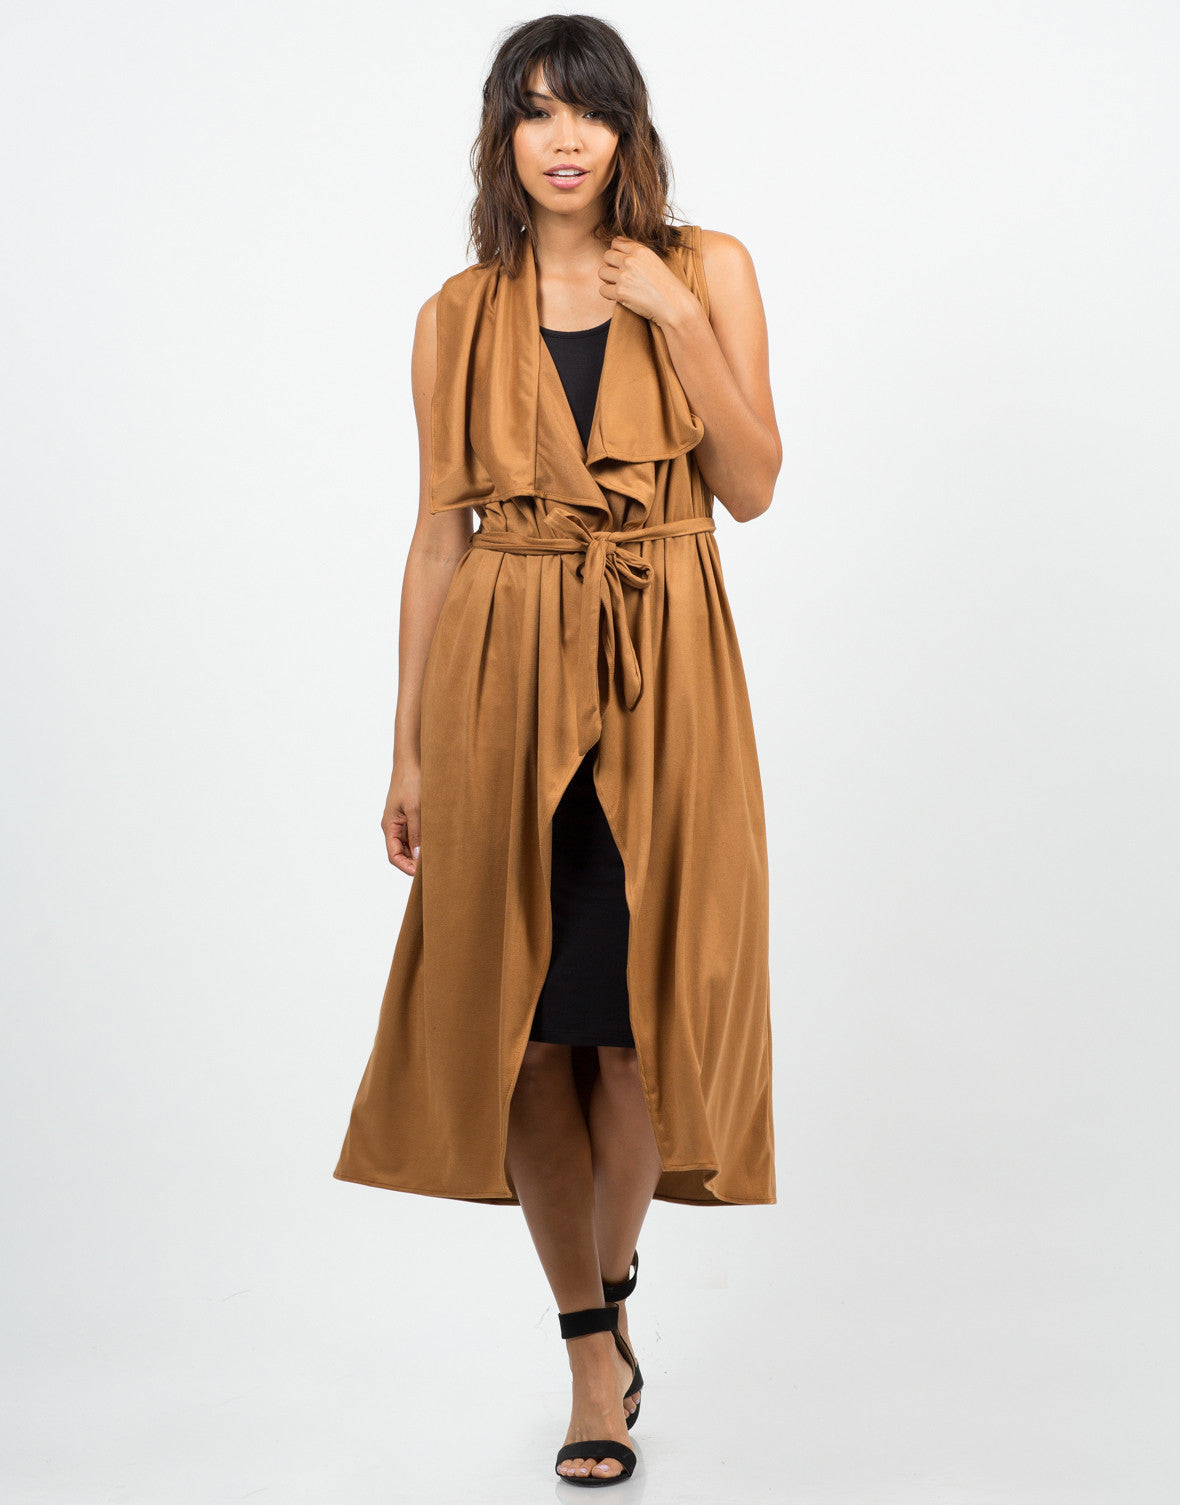 Front View of Drapey Camel Sleeveless Jacket